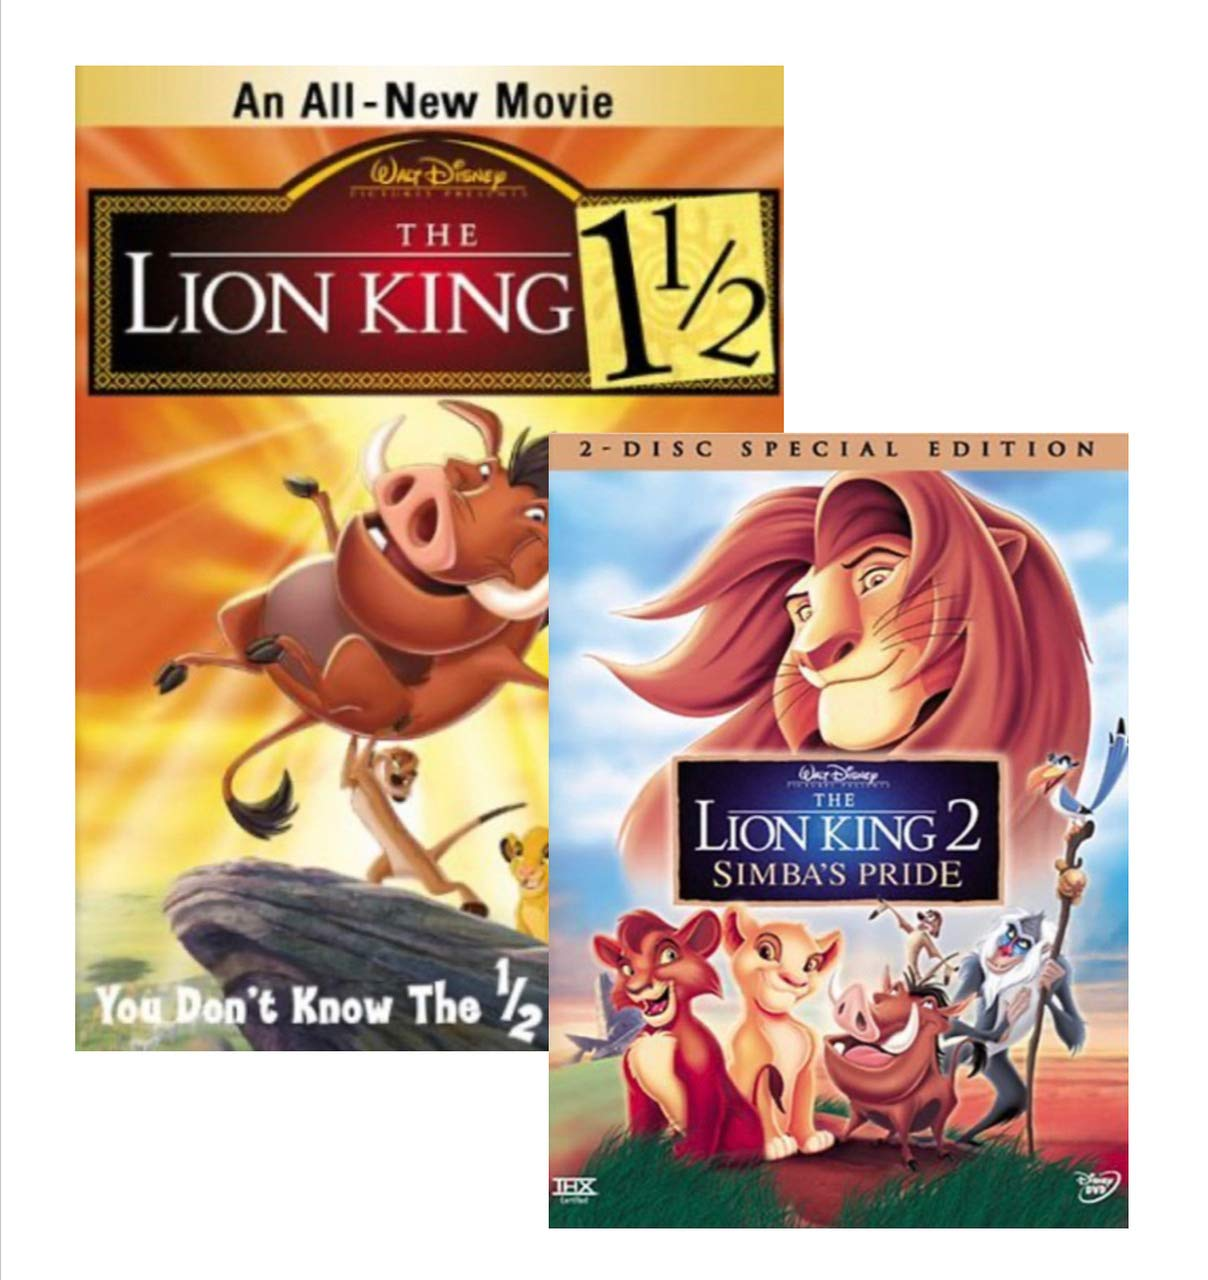 The Lion King 2: Simba's Pride / The Lion King 1 1/2 (DVD- 2 Disc Special Edition)(1998) (2 DVD Bundle)